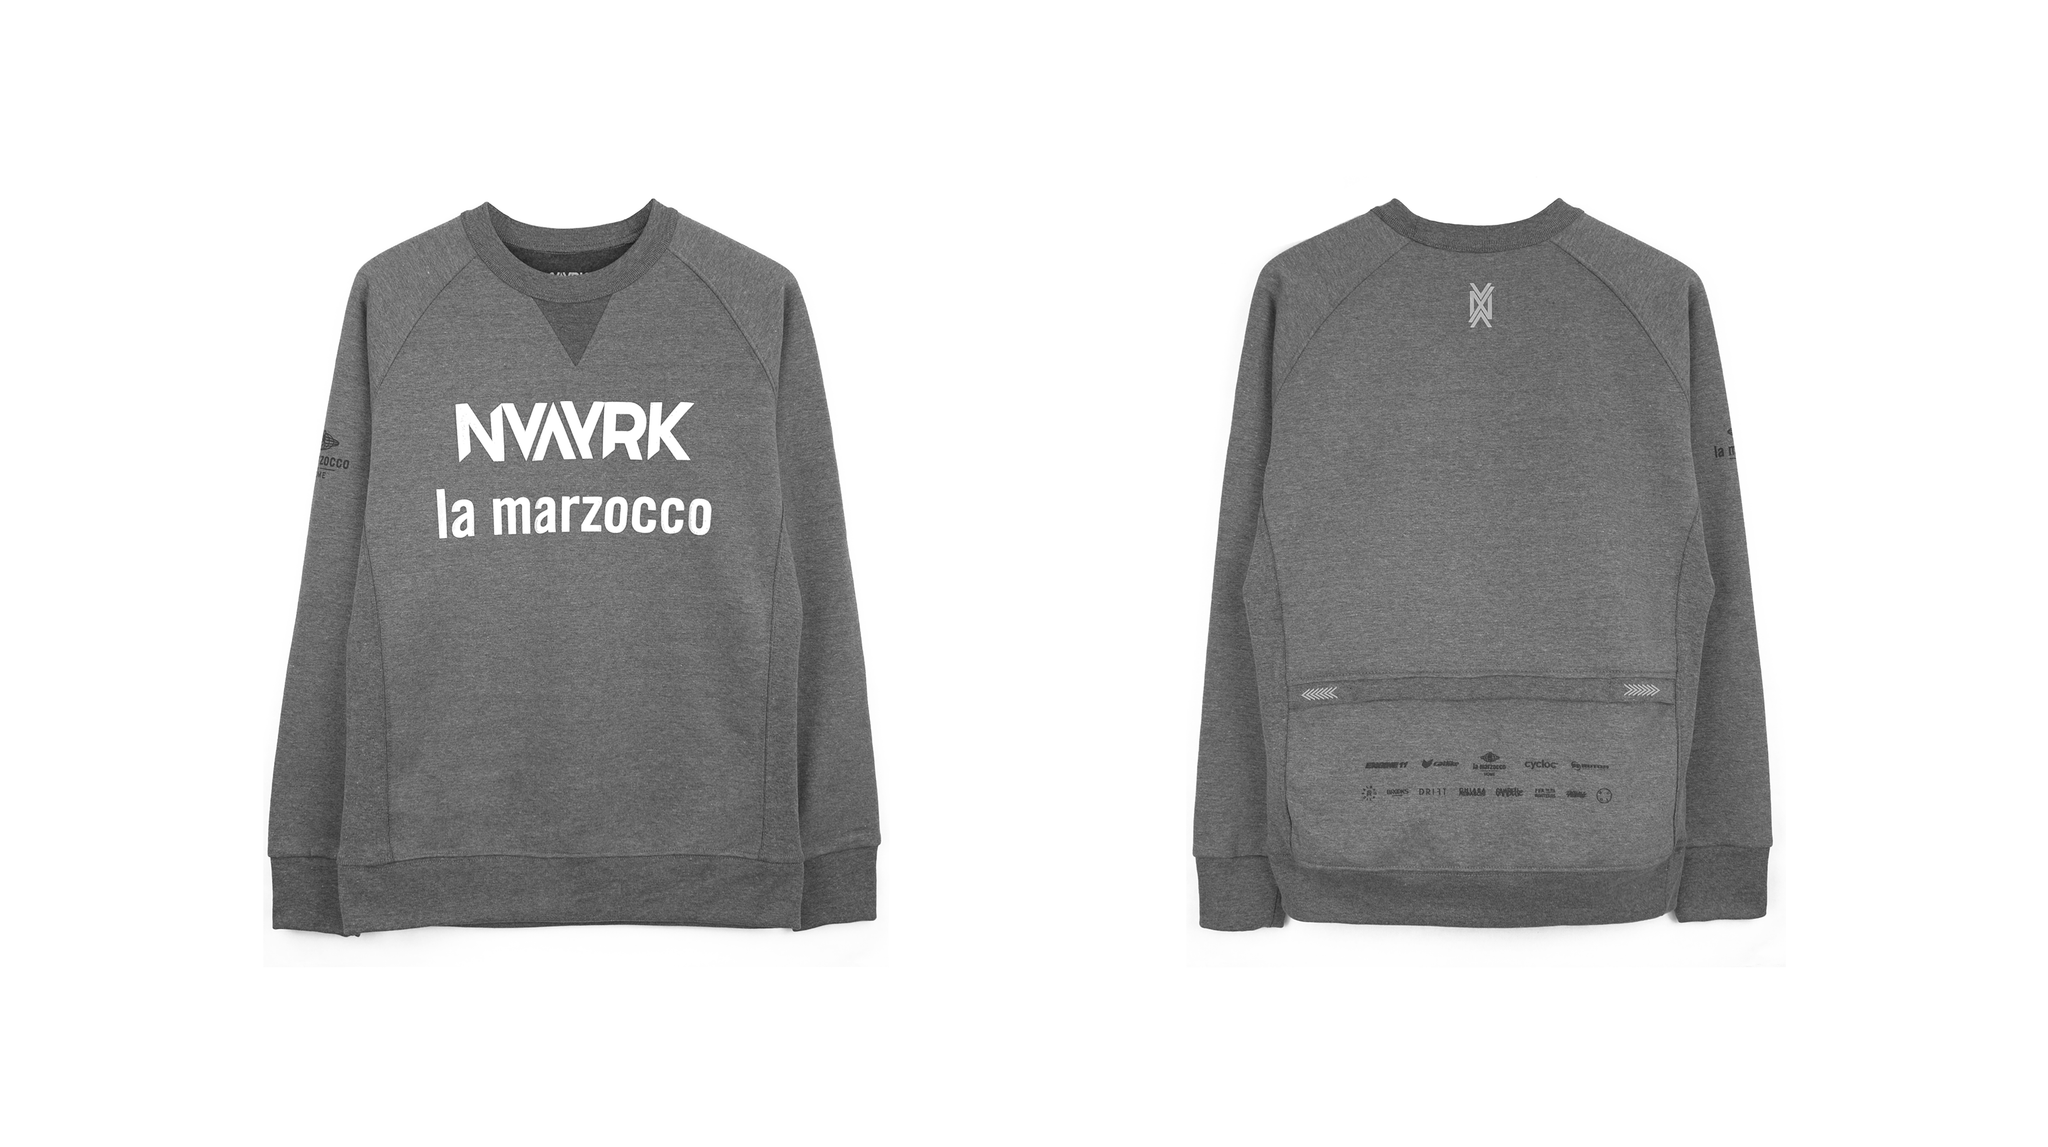 NVAYRK LA MARZOCCO Team Cycling Sweatshirt